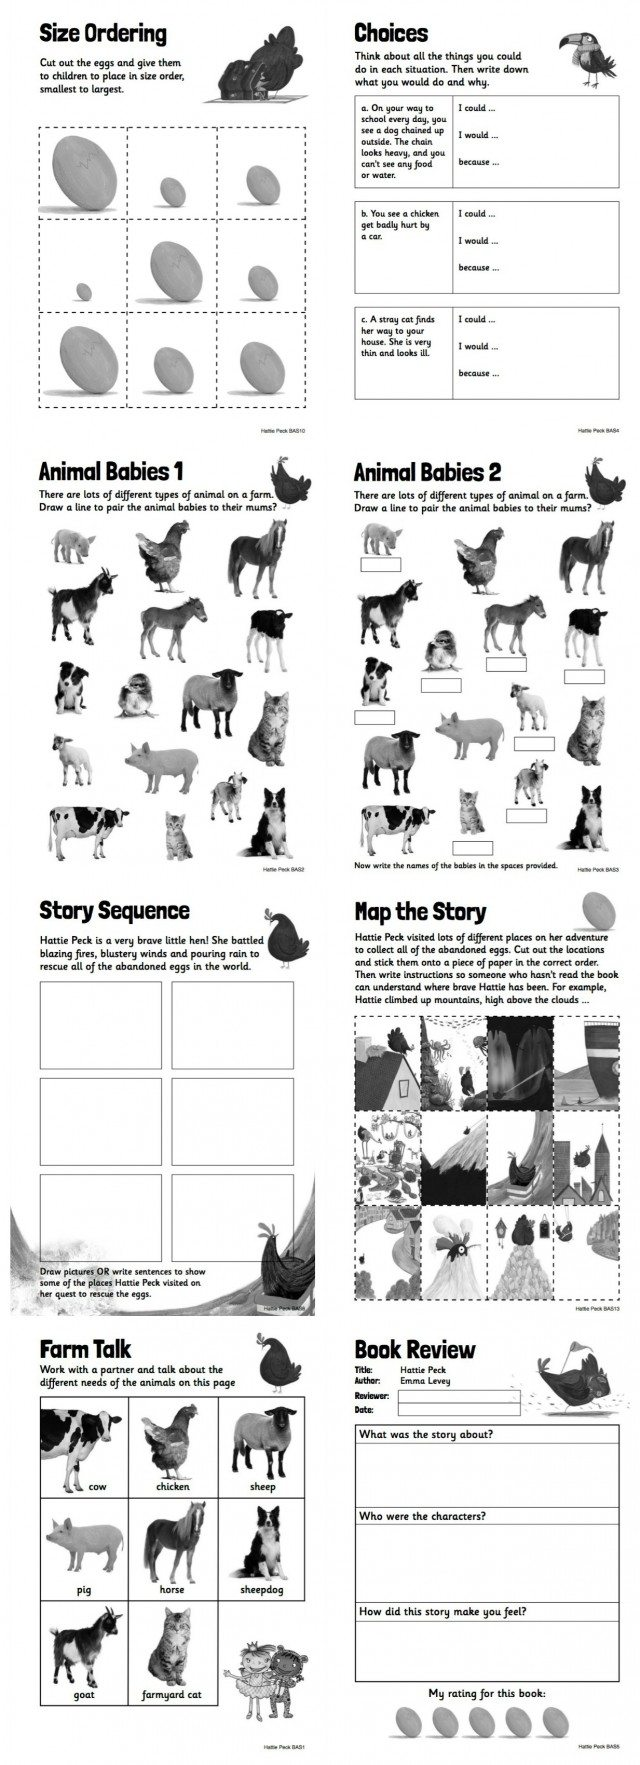 We have 17 free sheets in our learning pack to help motivate young readers from pre-school to kindergarten to primary school. 14 activity sheets, and 4 lesson plans, the ideas and activities touch on all areas of the curriculum to help both parents and teachers alike. Visit The Story Station for more great books and ideas to help kids have fun while learning.